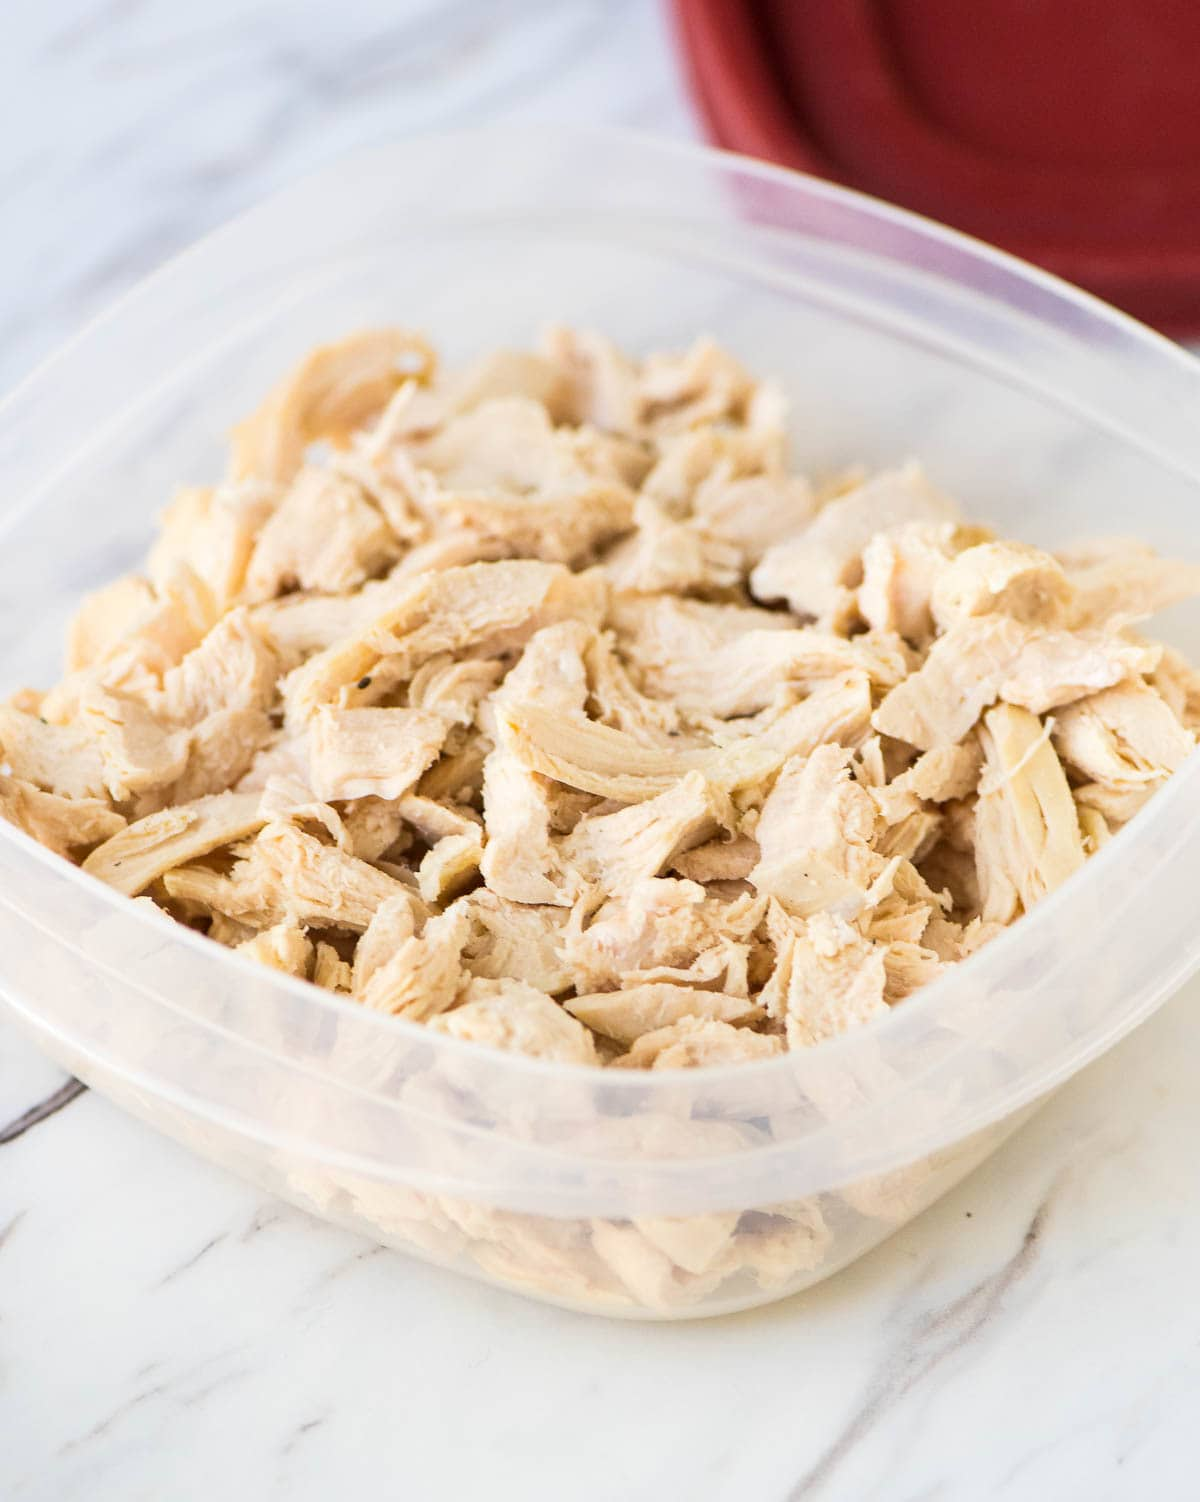 How to cook poached chicken in 3 steps: Perfect for adding shredded chicken or diced chicken to any recipe. @wellplated